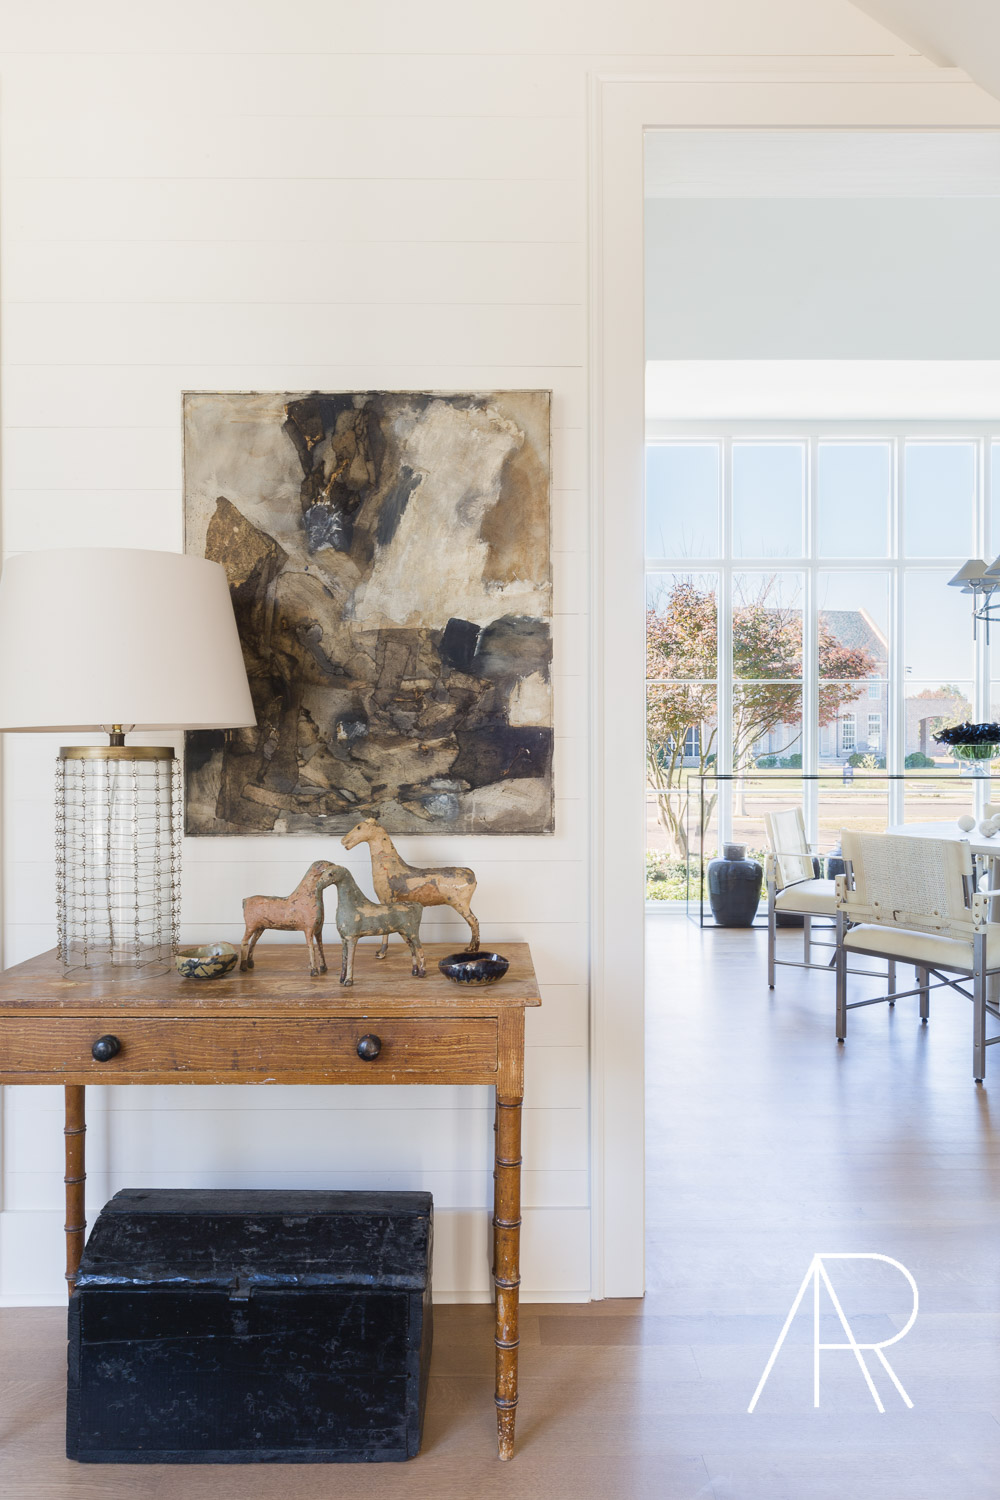 ©AlyssaRosenheck Alyssa Rosenheck's The New Southern Designer Spotlight with Sean Anderson, Interior Designer of Memphis, TN Dining room art by Sean Anderson